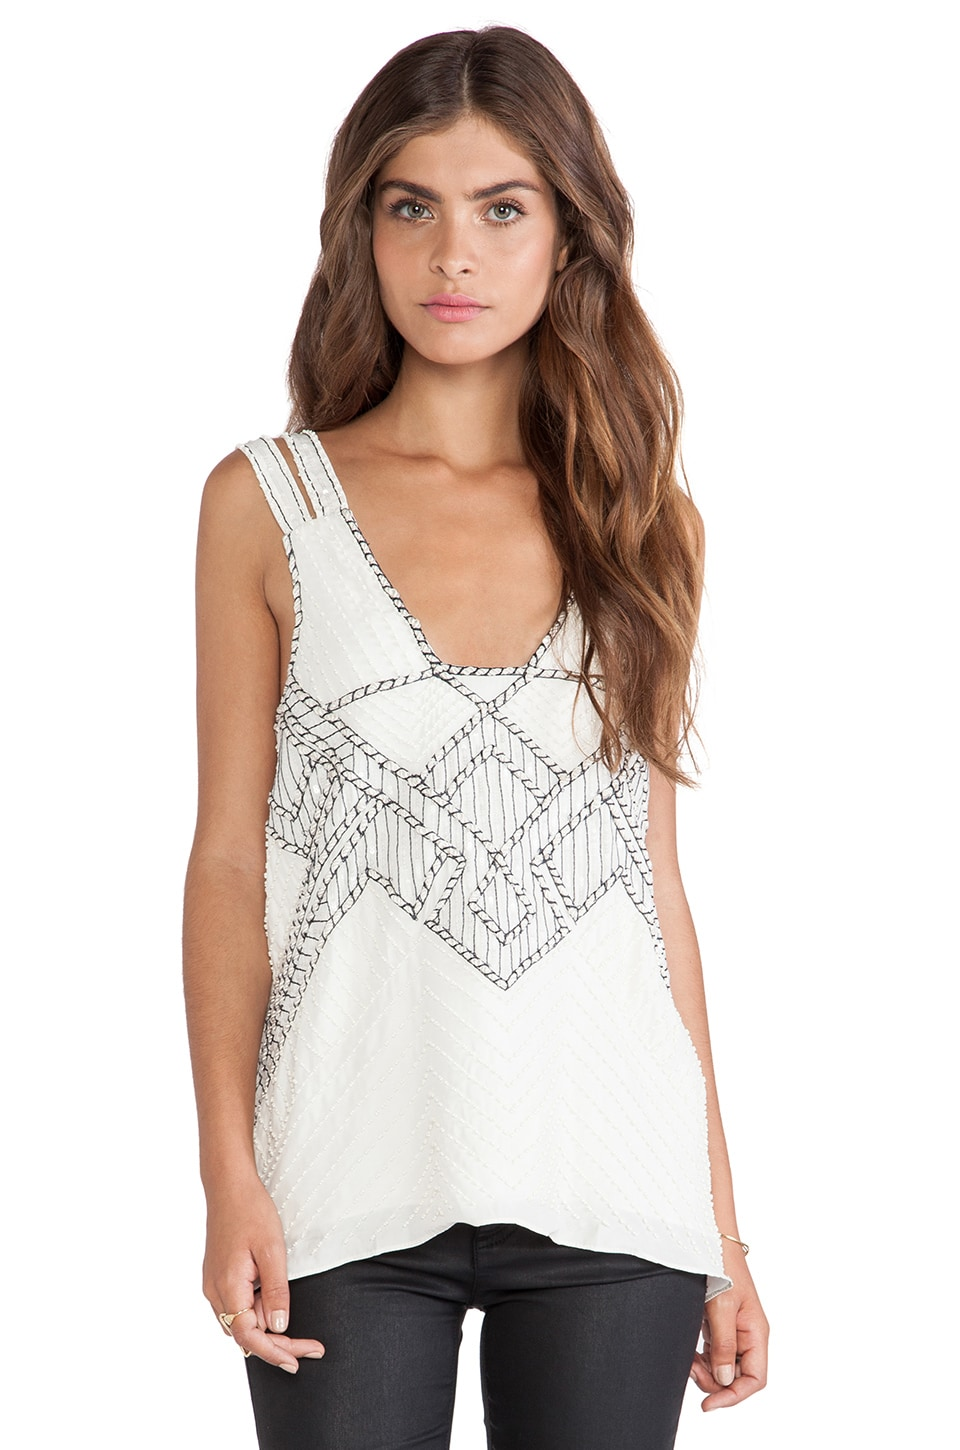 Parker Nadia Sequined Top in White